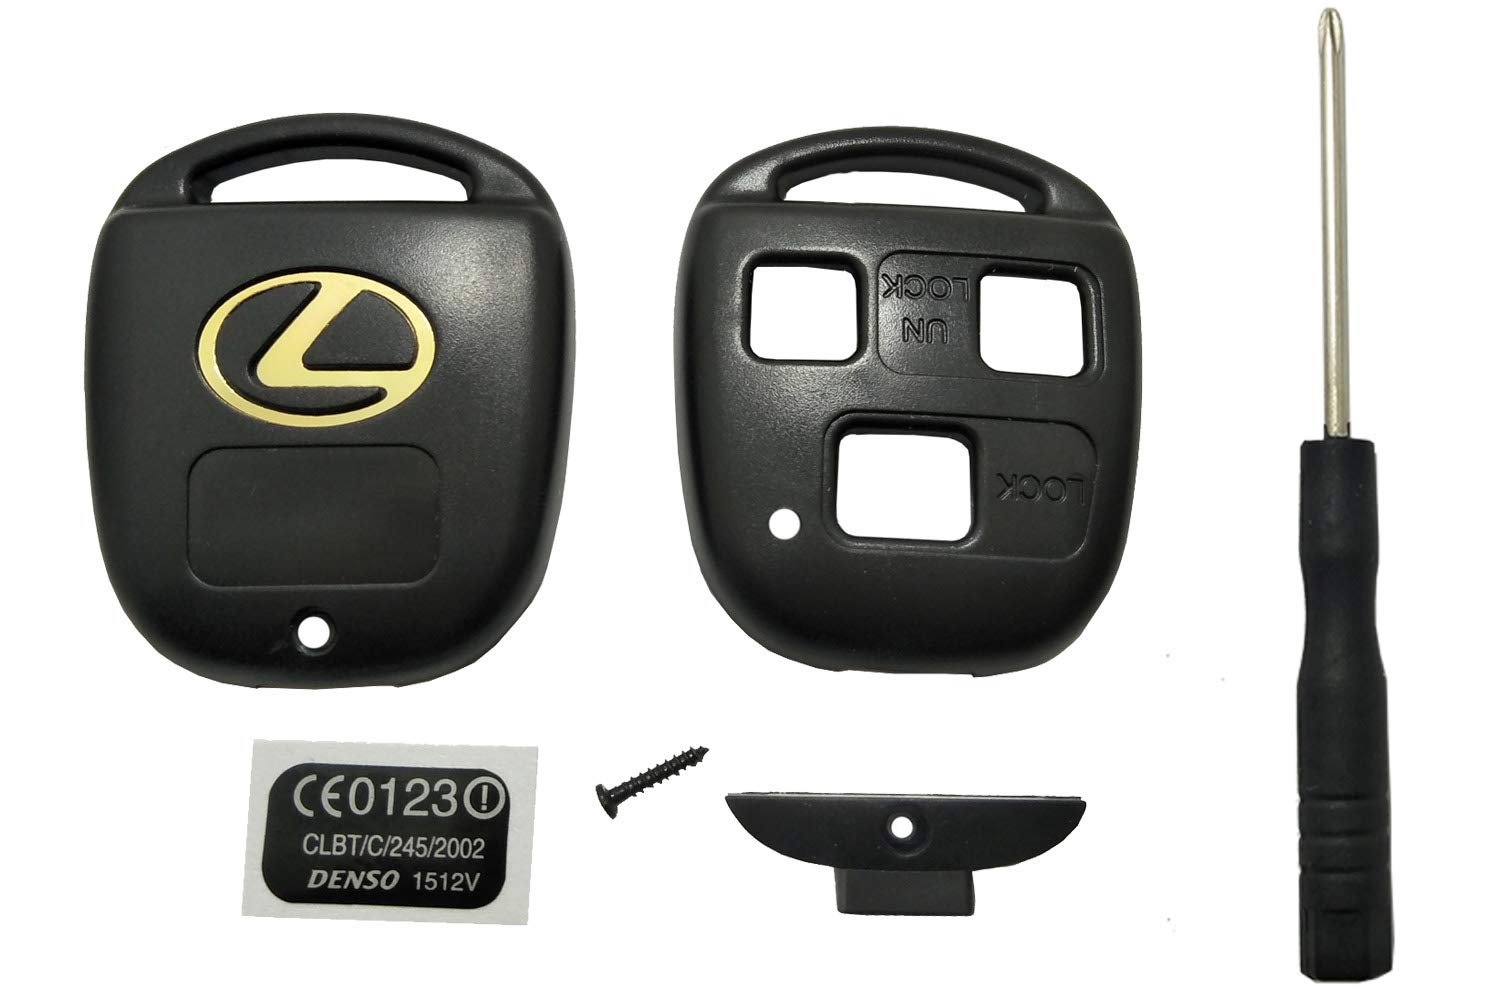 Lexus Key Fob Replacement >> Horande Replacement Key Fob Case Shell Fit For Lexus Lexus Es Gs Gx Is Ls Lx Rx Sc Keyless Entry Key Fob Cover Housing Without Blade